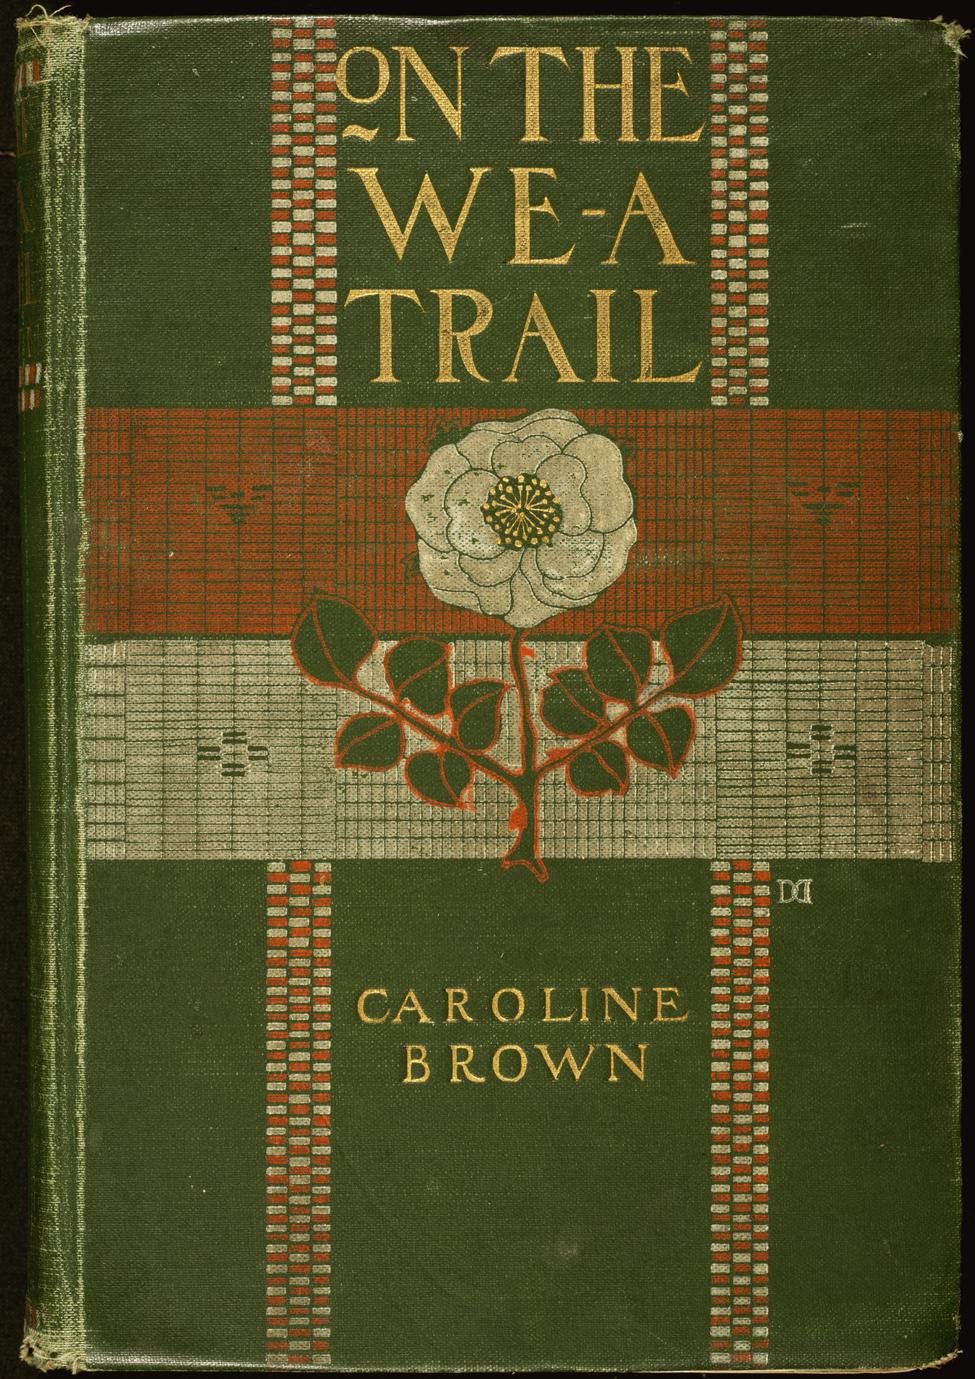 On the We-a trail : a story of the great wilderness (1 of 2)